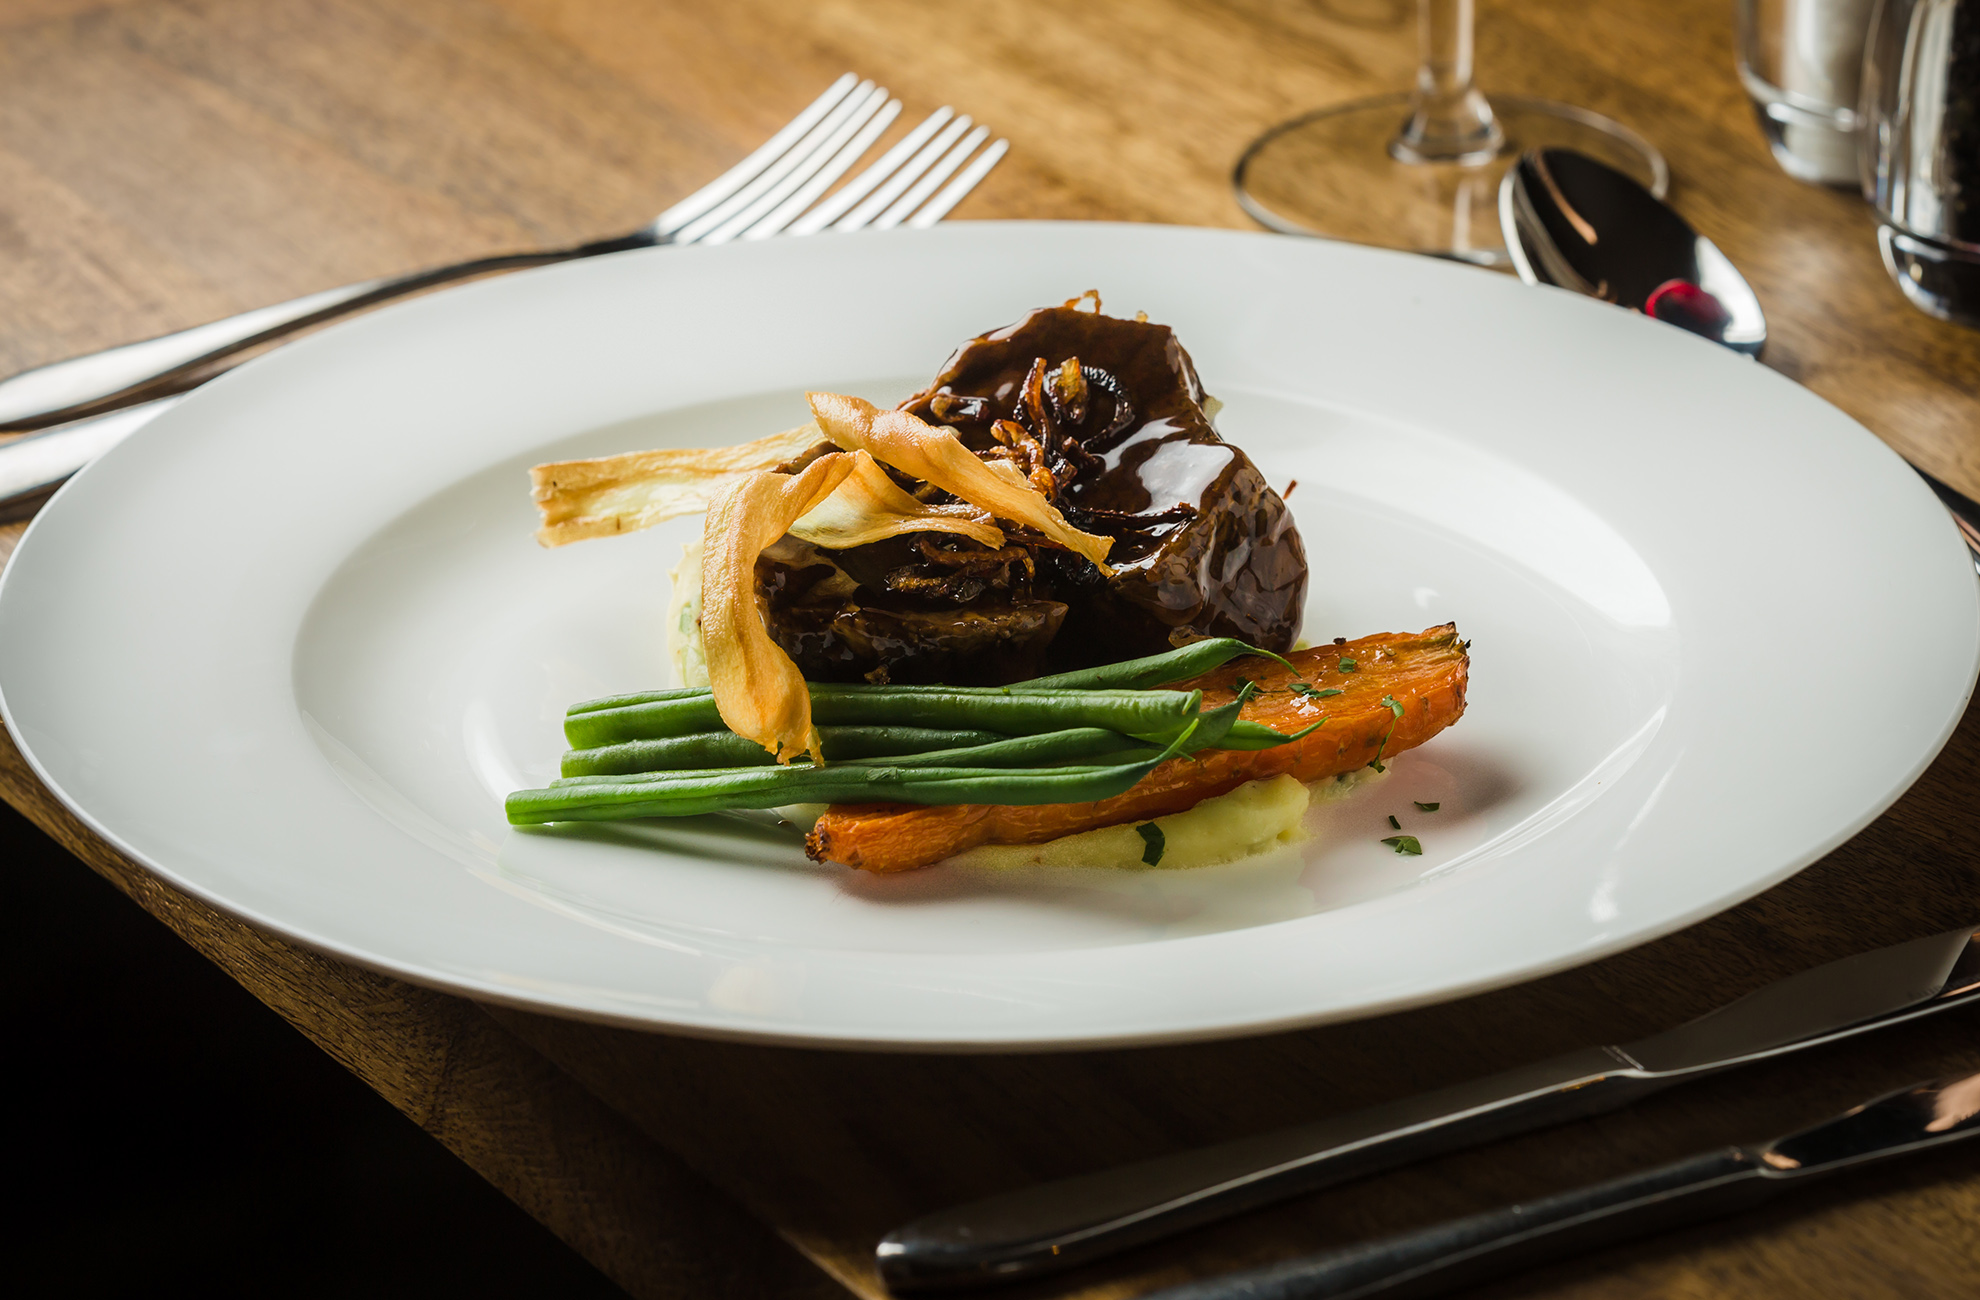 Slow cooked beef is a popular wedding breakfast choice for couples getting married at Combermere Abbey